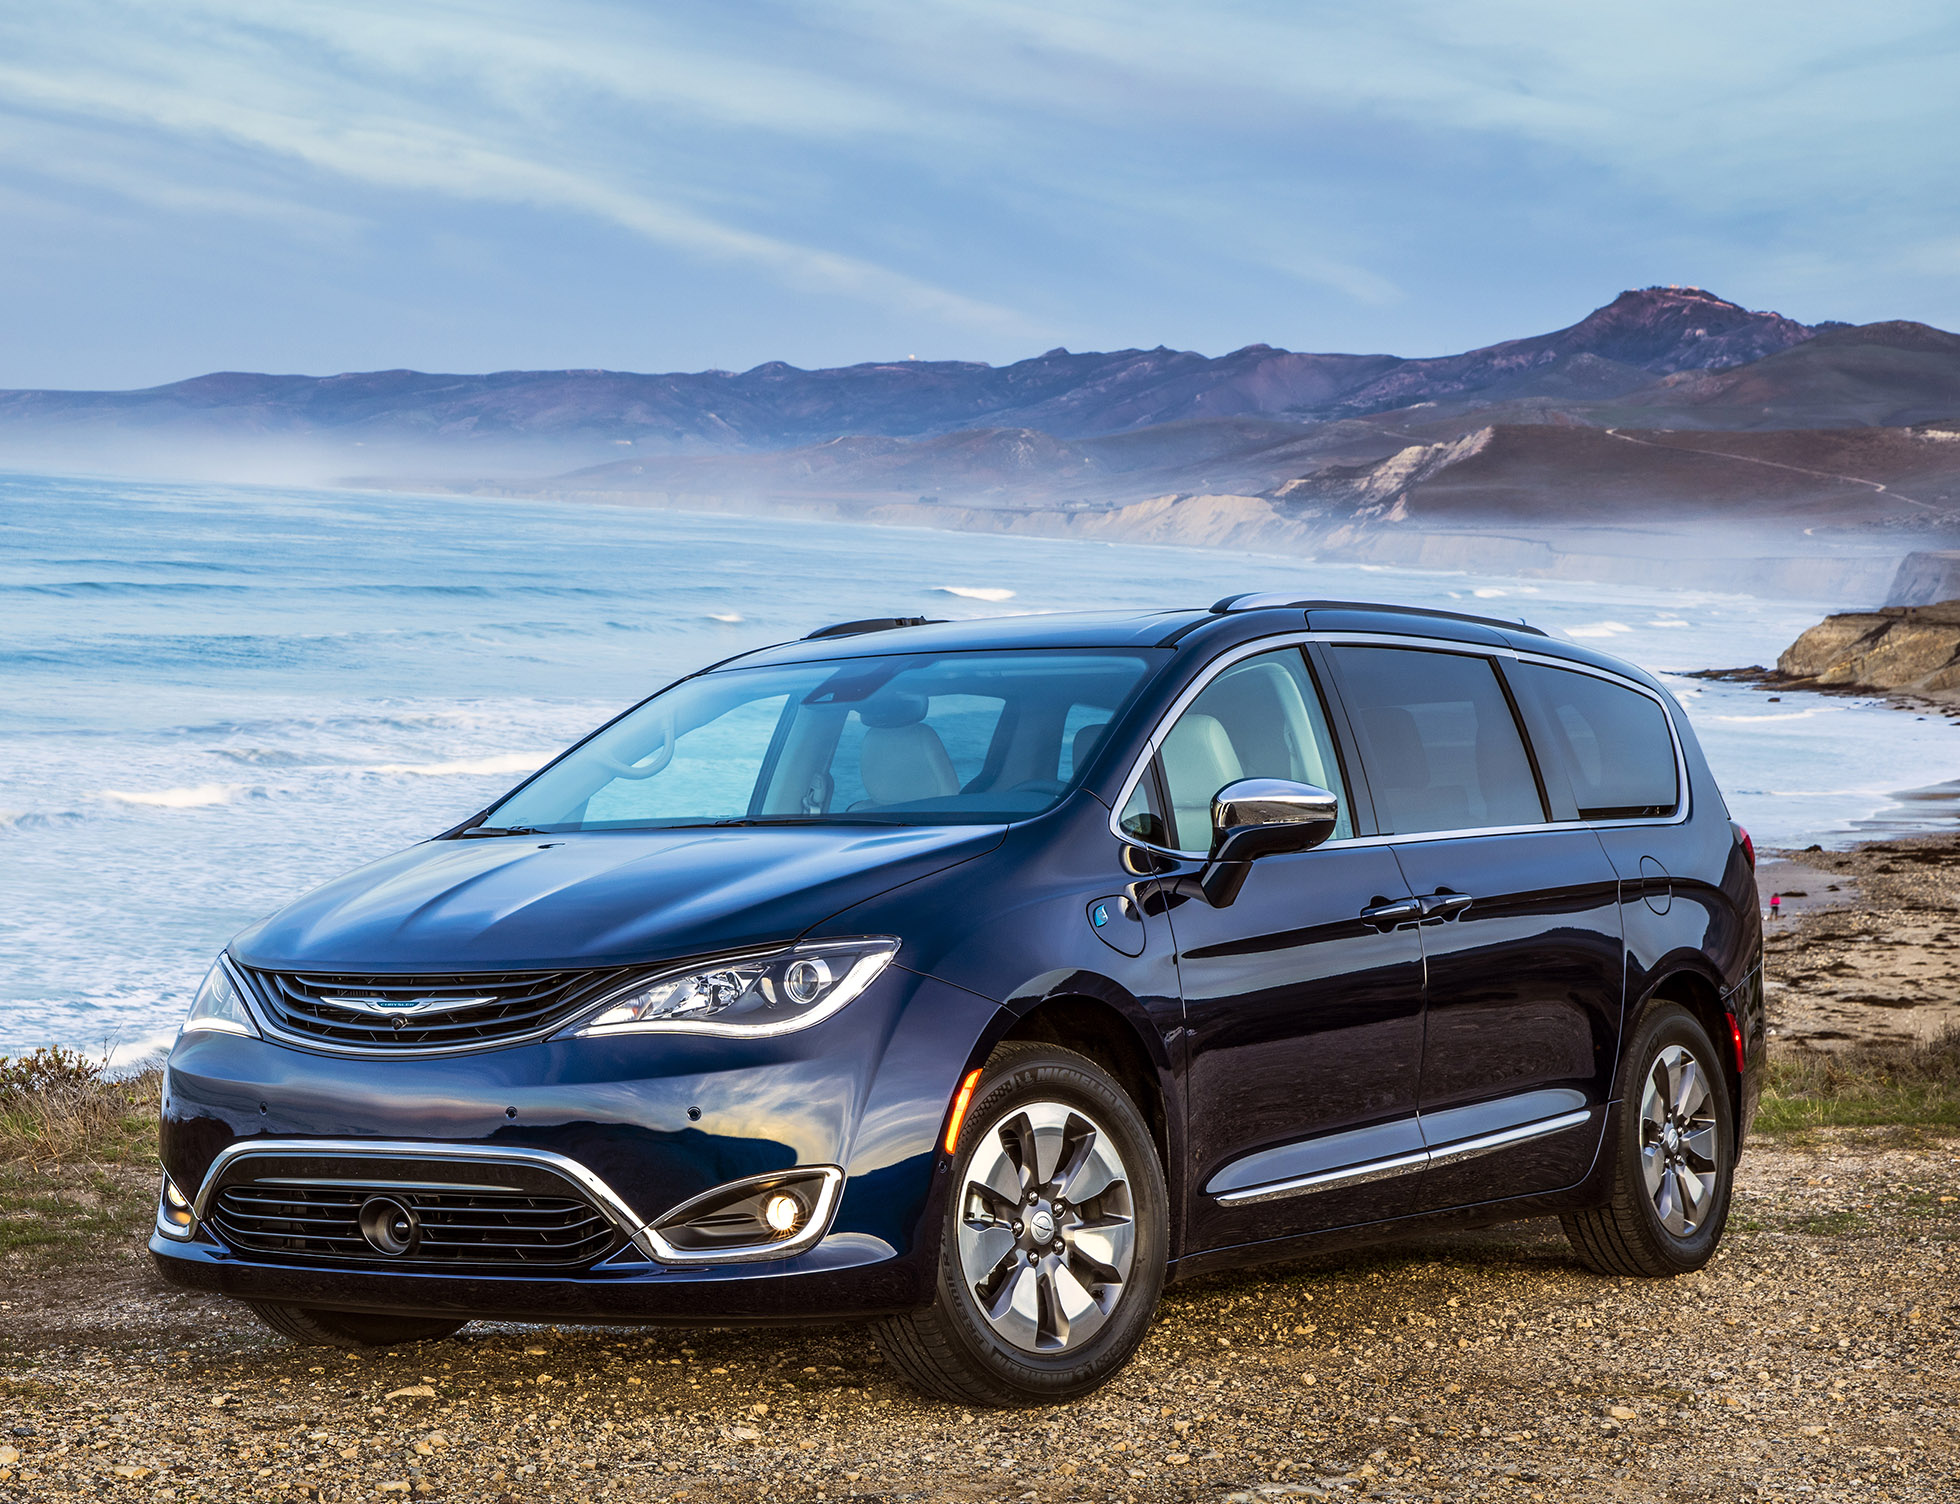 Chrysler Pacifica : Plug-in hybrid minivan starts at $39,995, can go 30 miles on battery